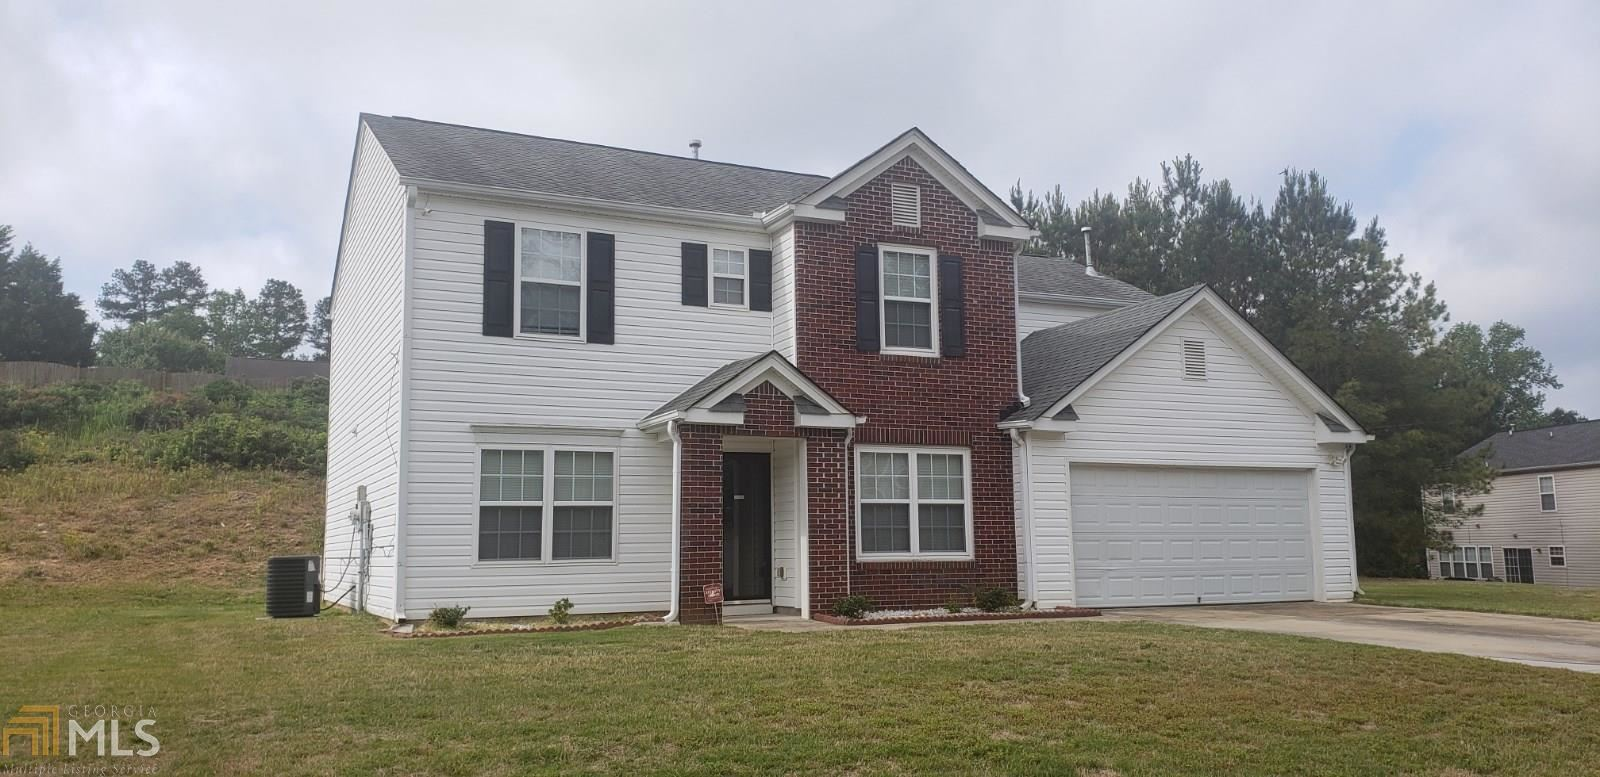 3442 Saddle Creek Ln, Ellenwood, GA 30294 - #: 8827332